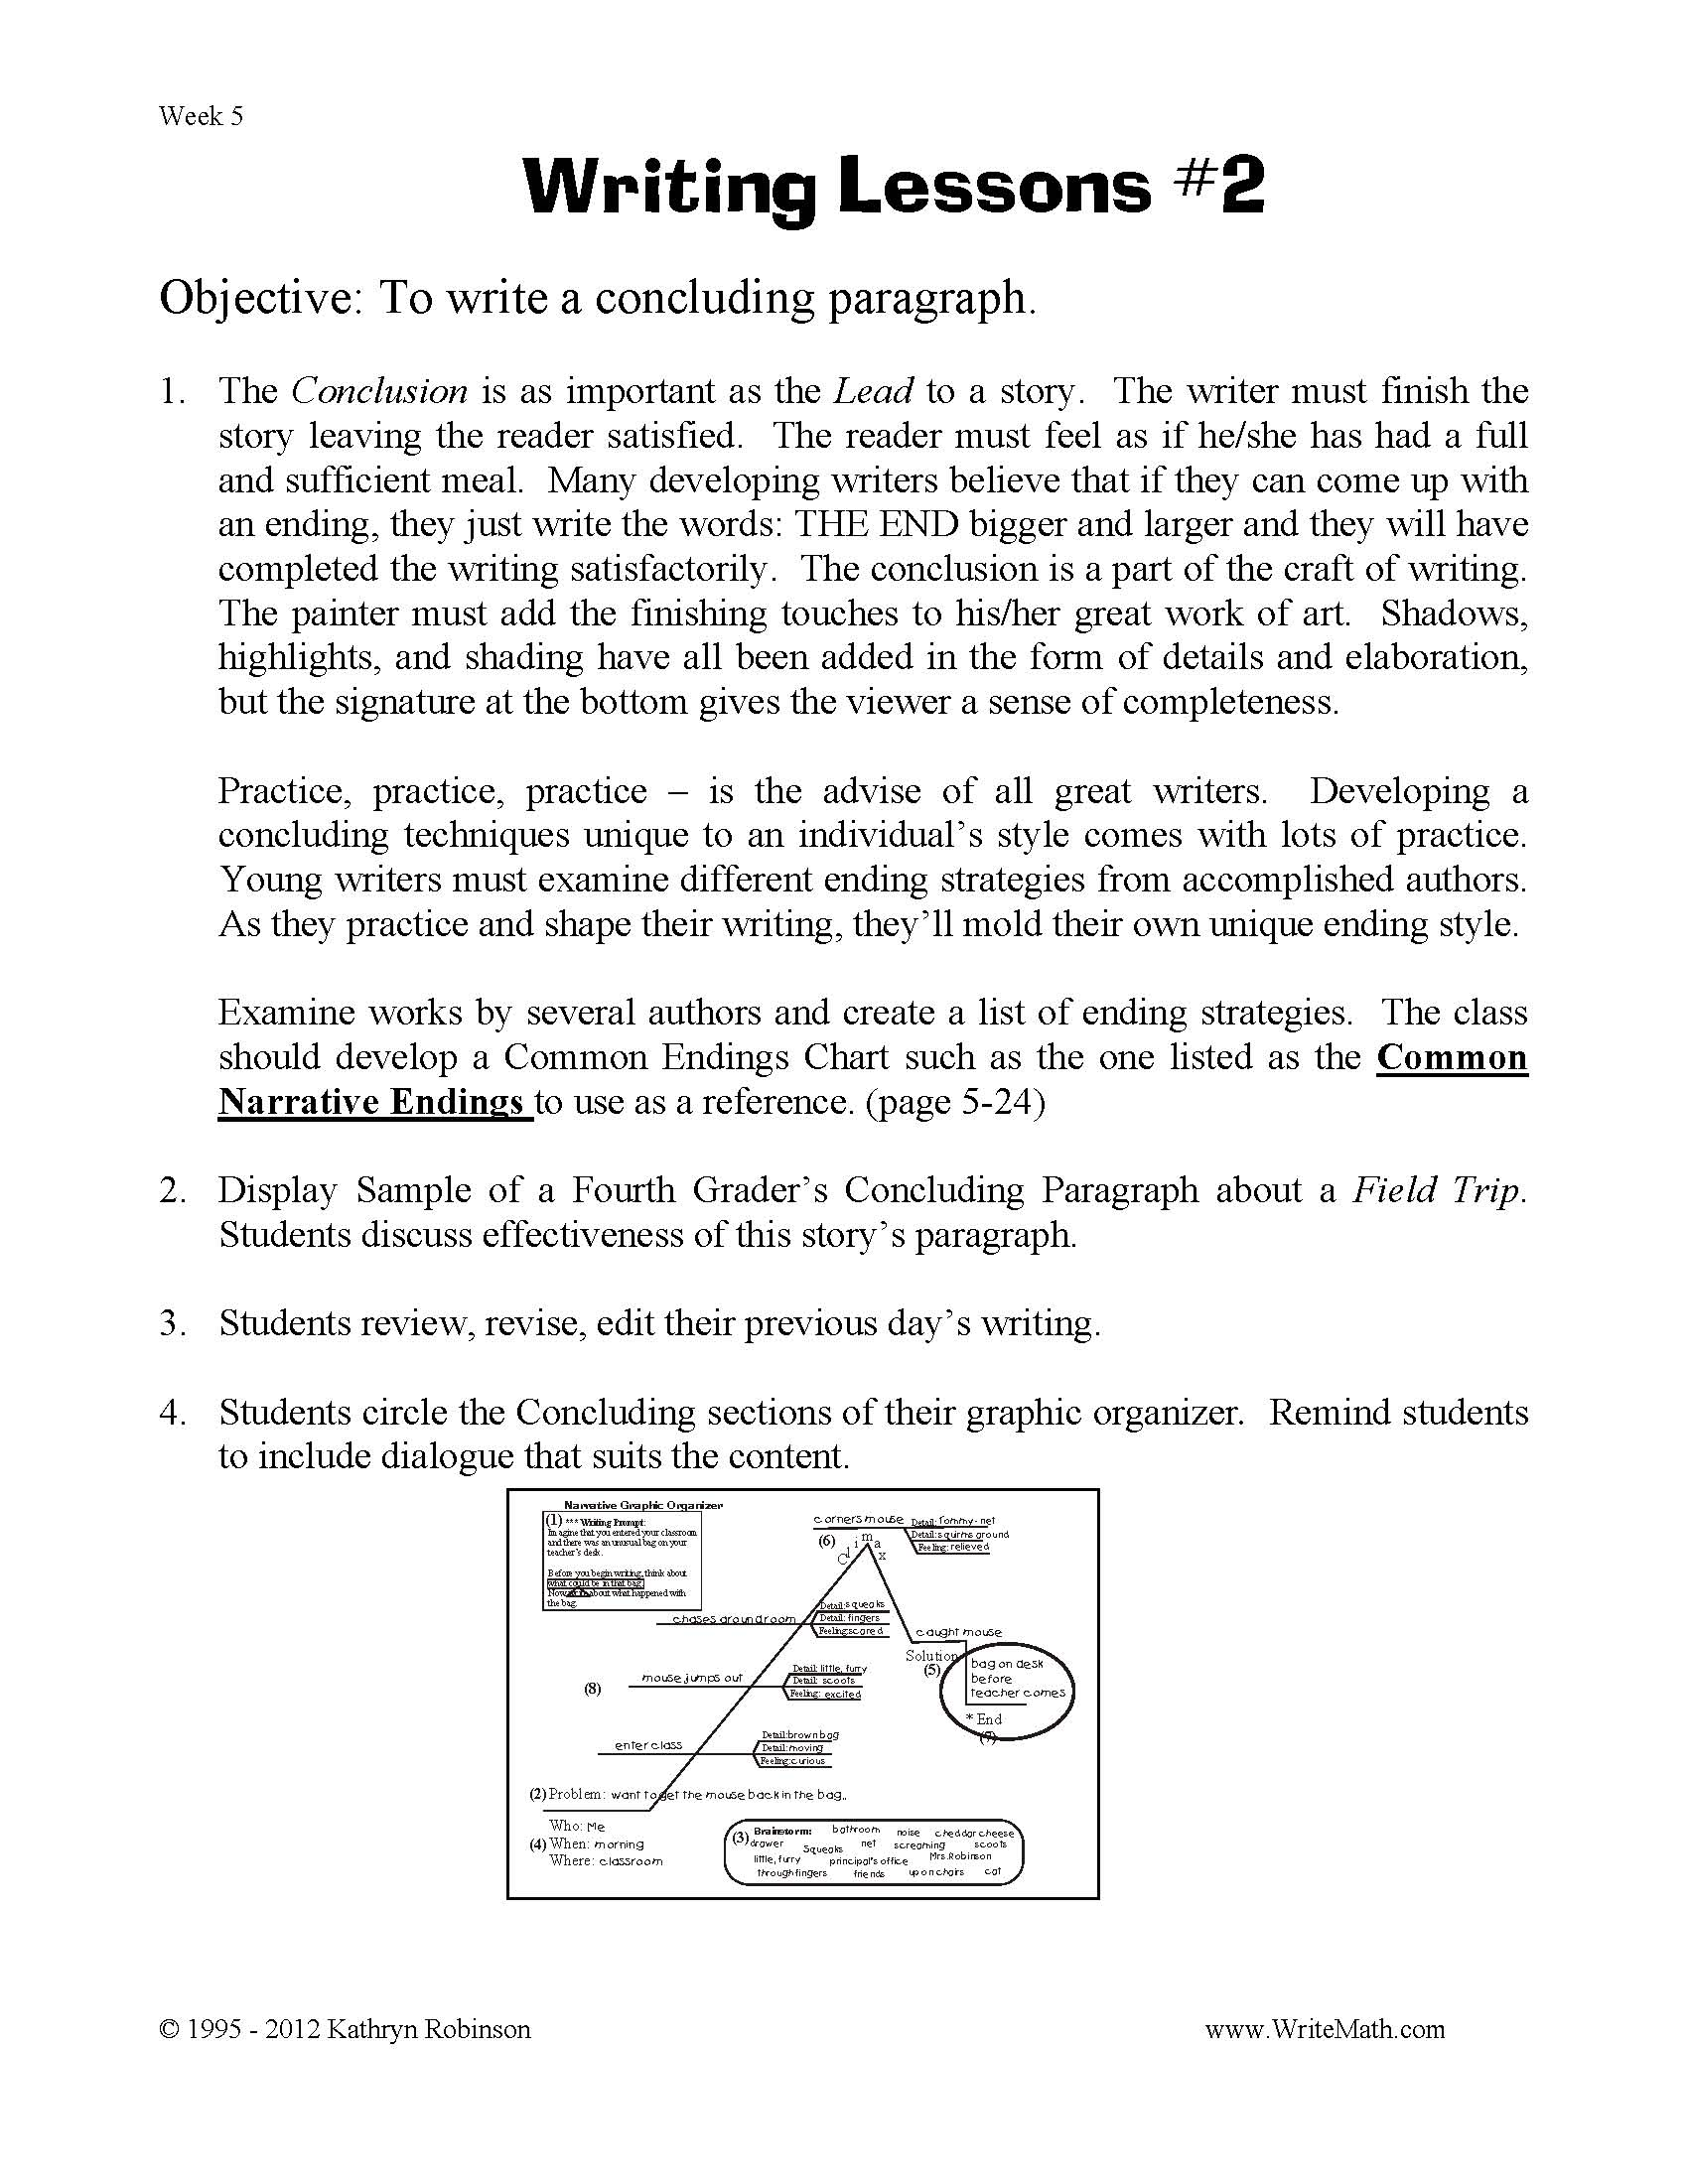 Essay Topics For 6th Grade Students A List Of Excellent 6th Grade Essay Writing Prompts 01 07